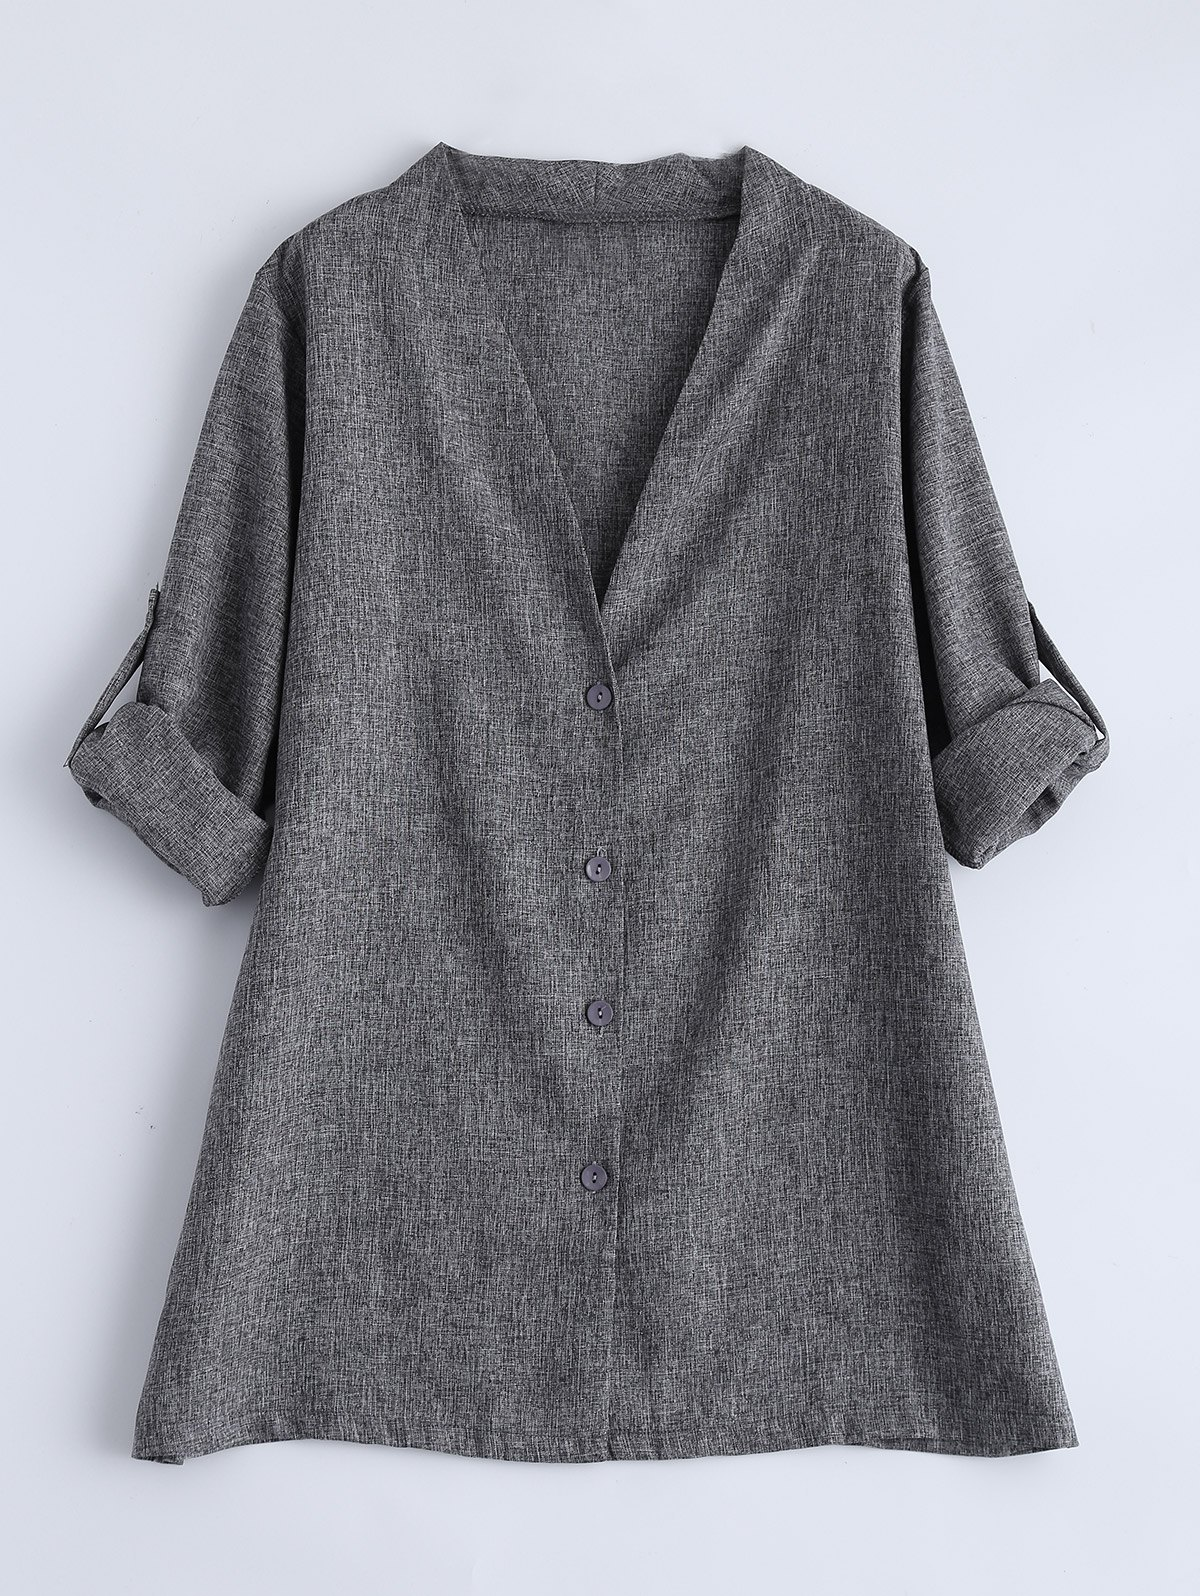 Plus Size Single Breasted CoatWomen<br><br><br>Size: 5XL<br>Color: GRAY